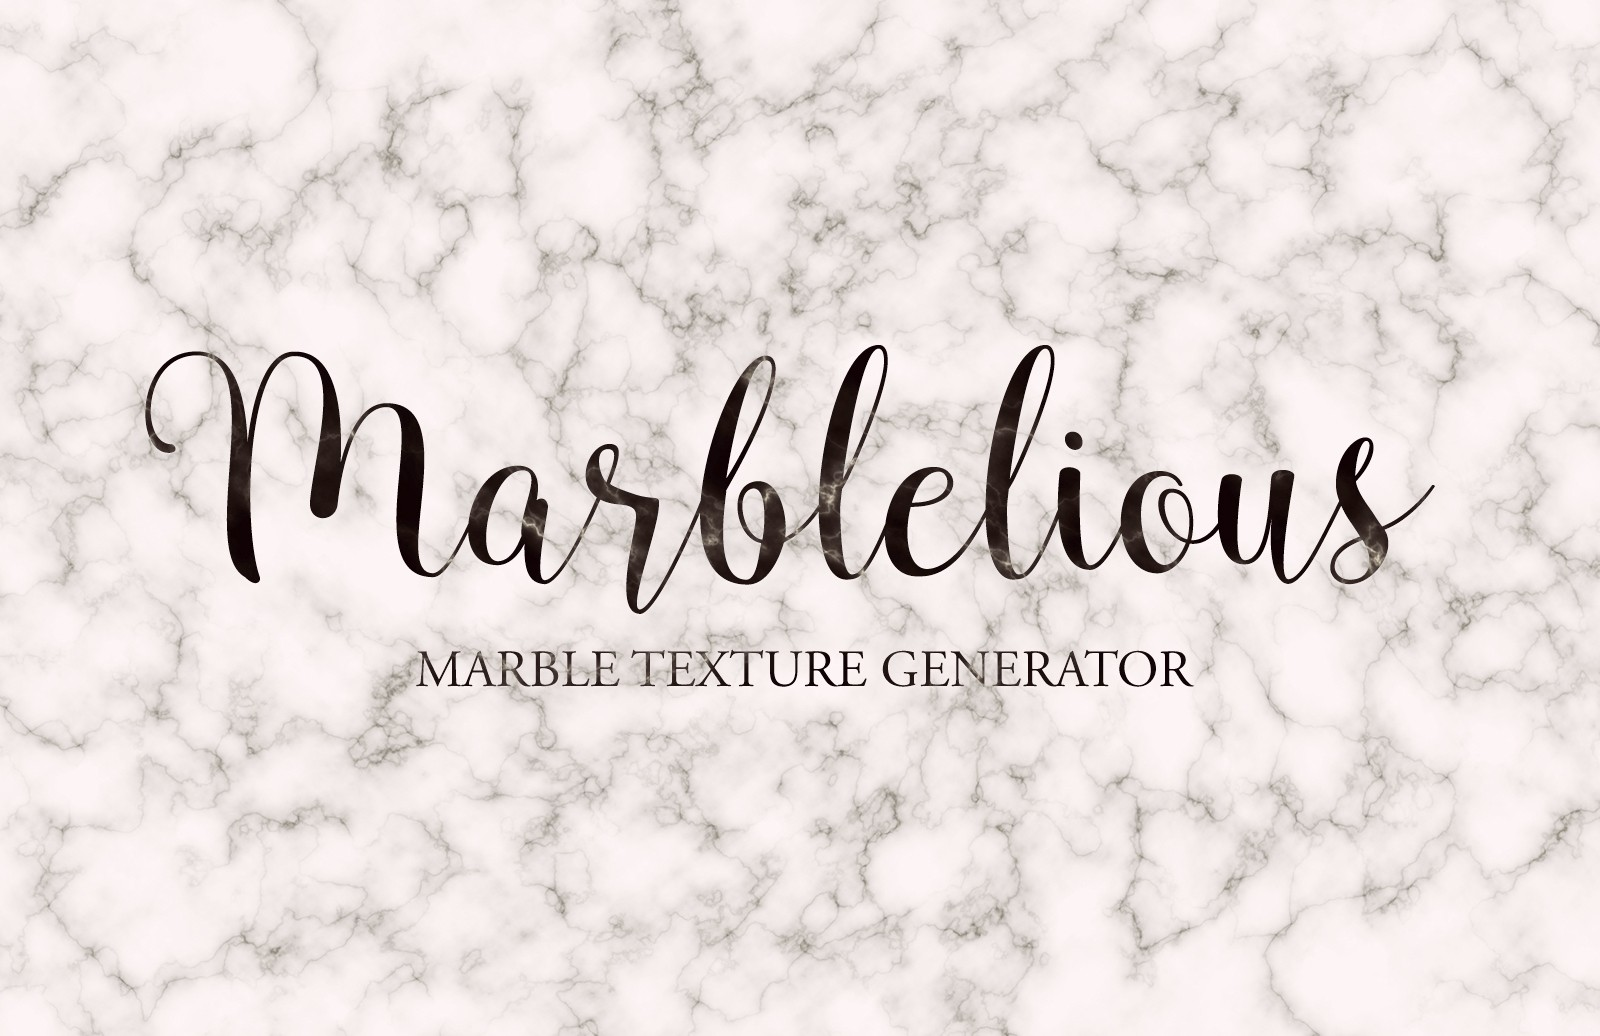 Marblelious  Marble  Texture  Generator  Preview 1